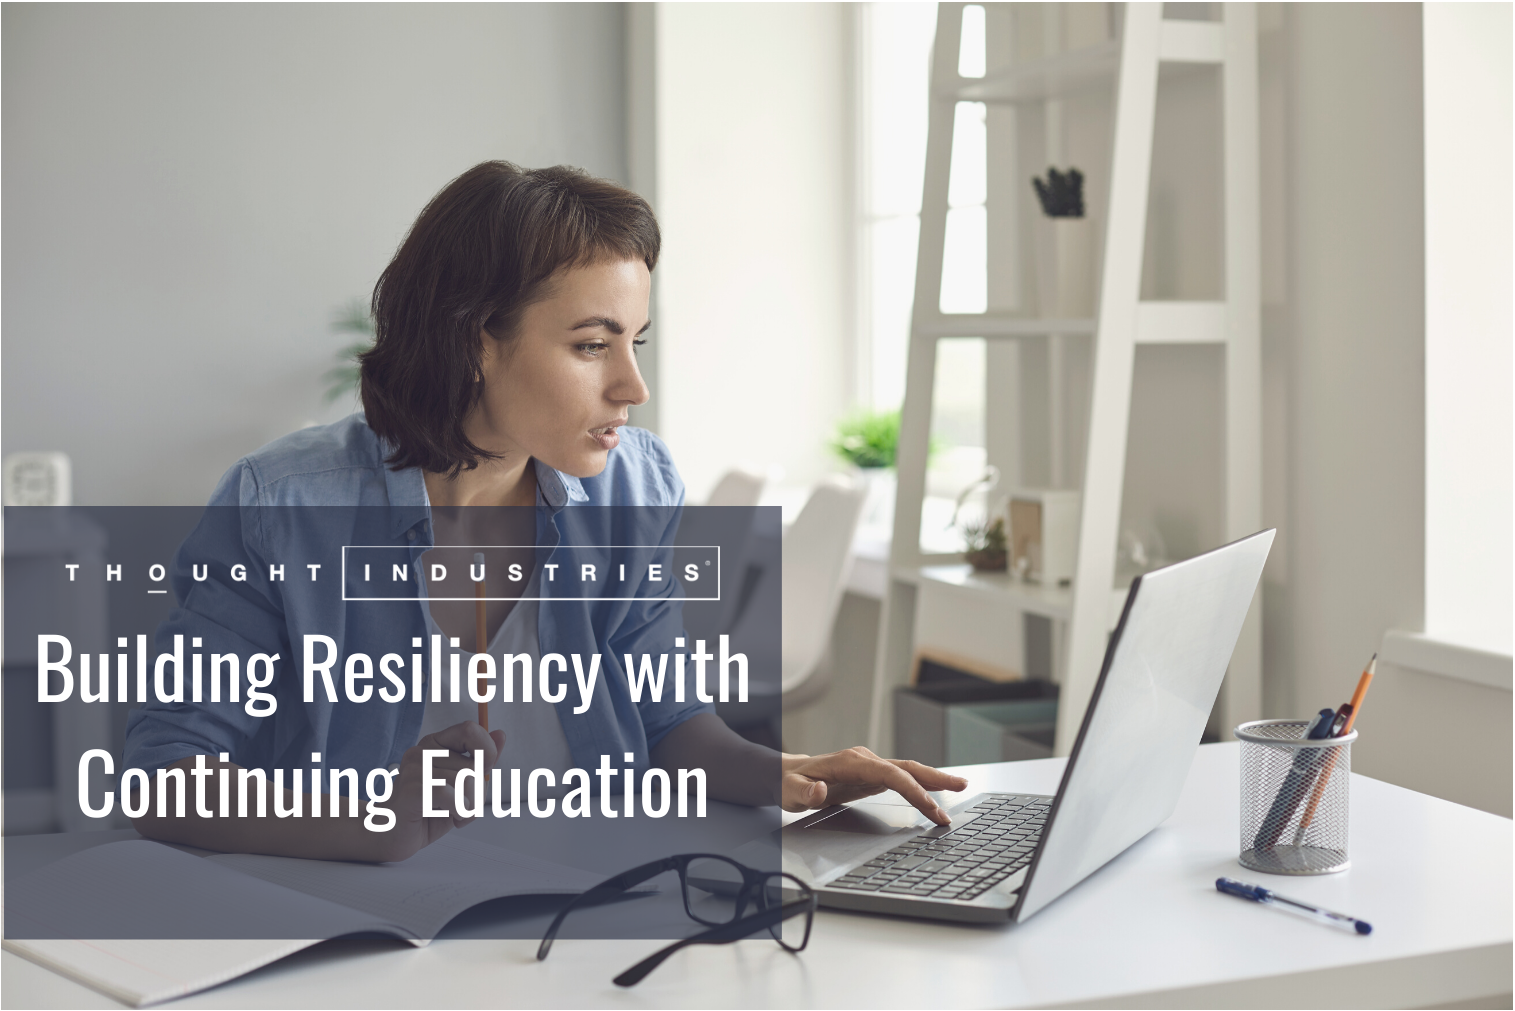 Building Resiliency with Continuing Education-1